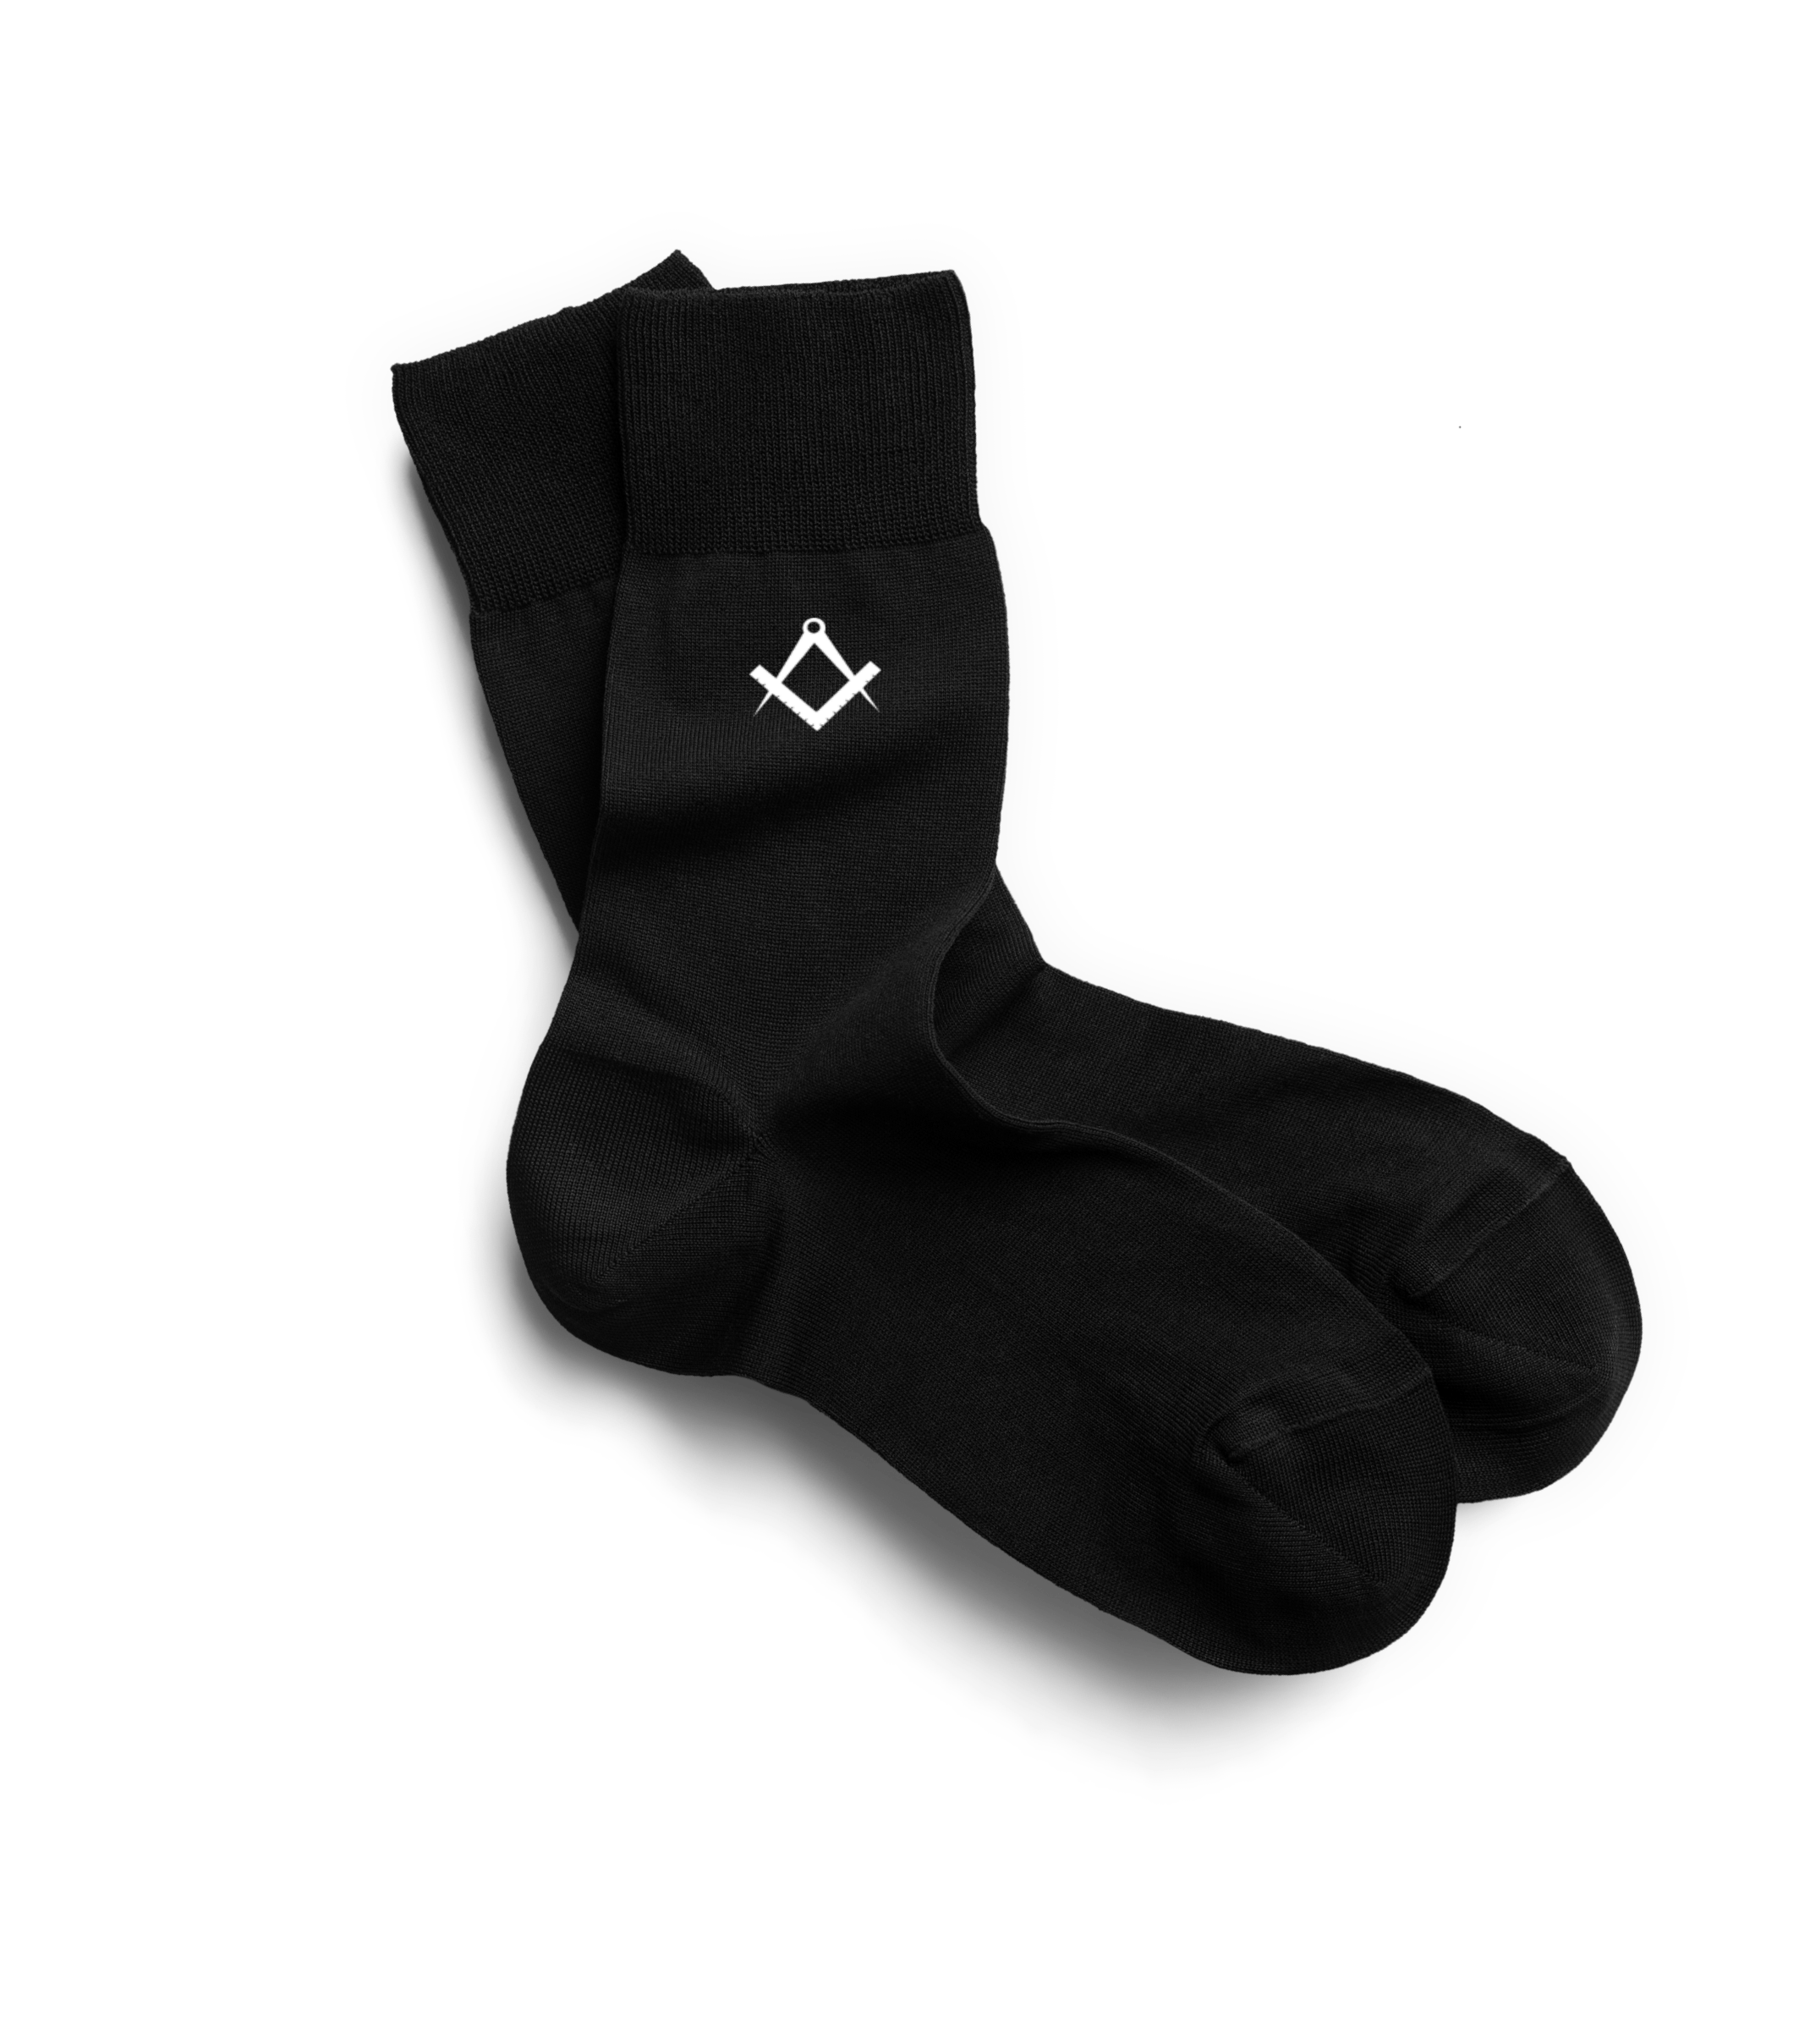 Masonic socks for him